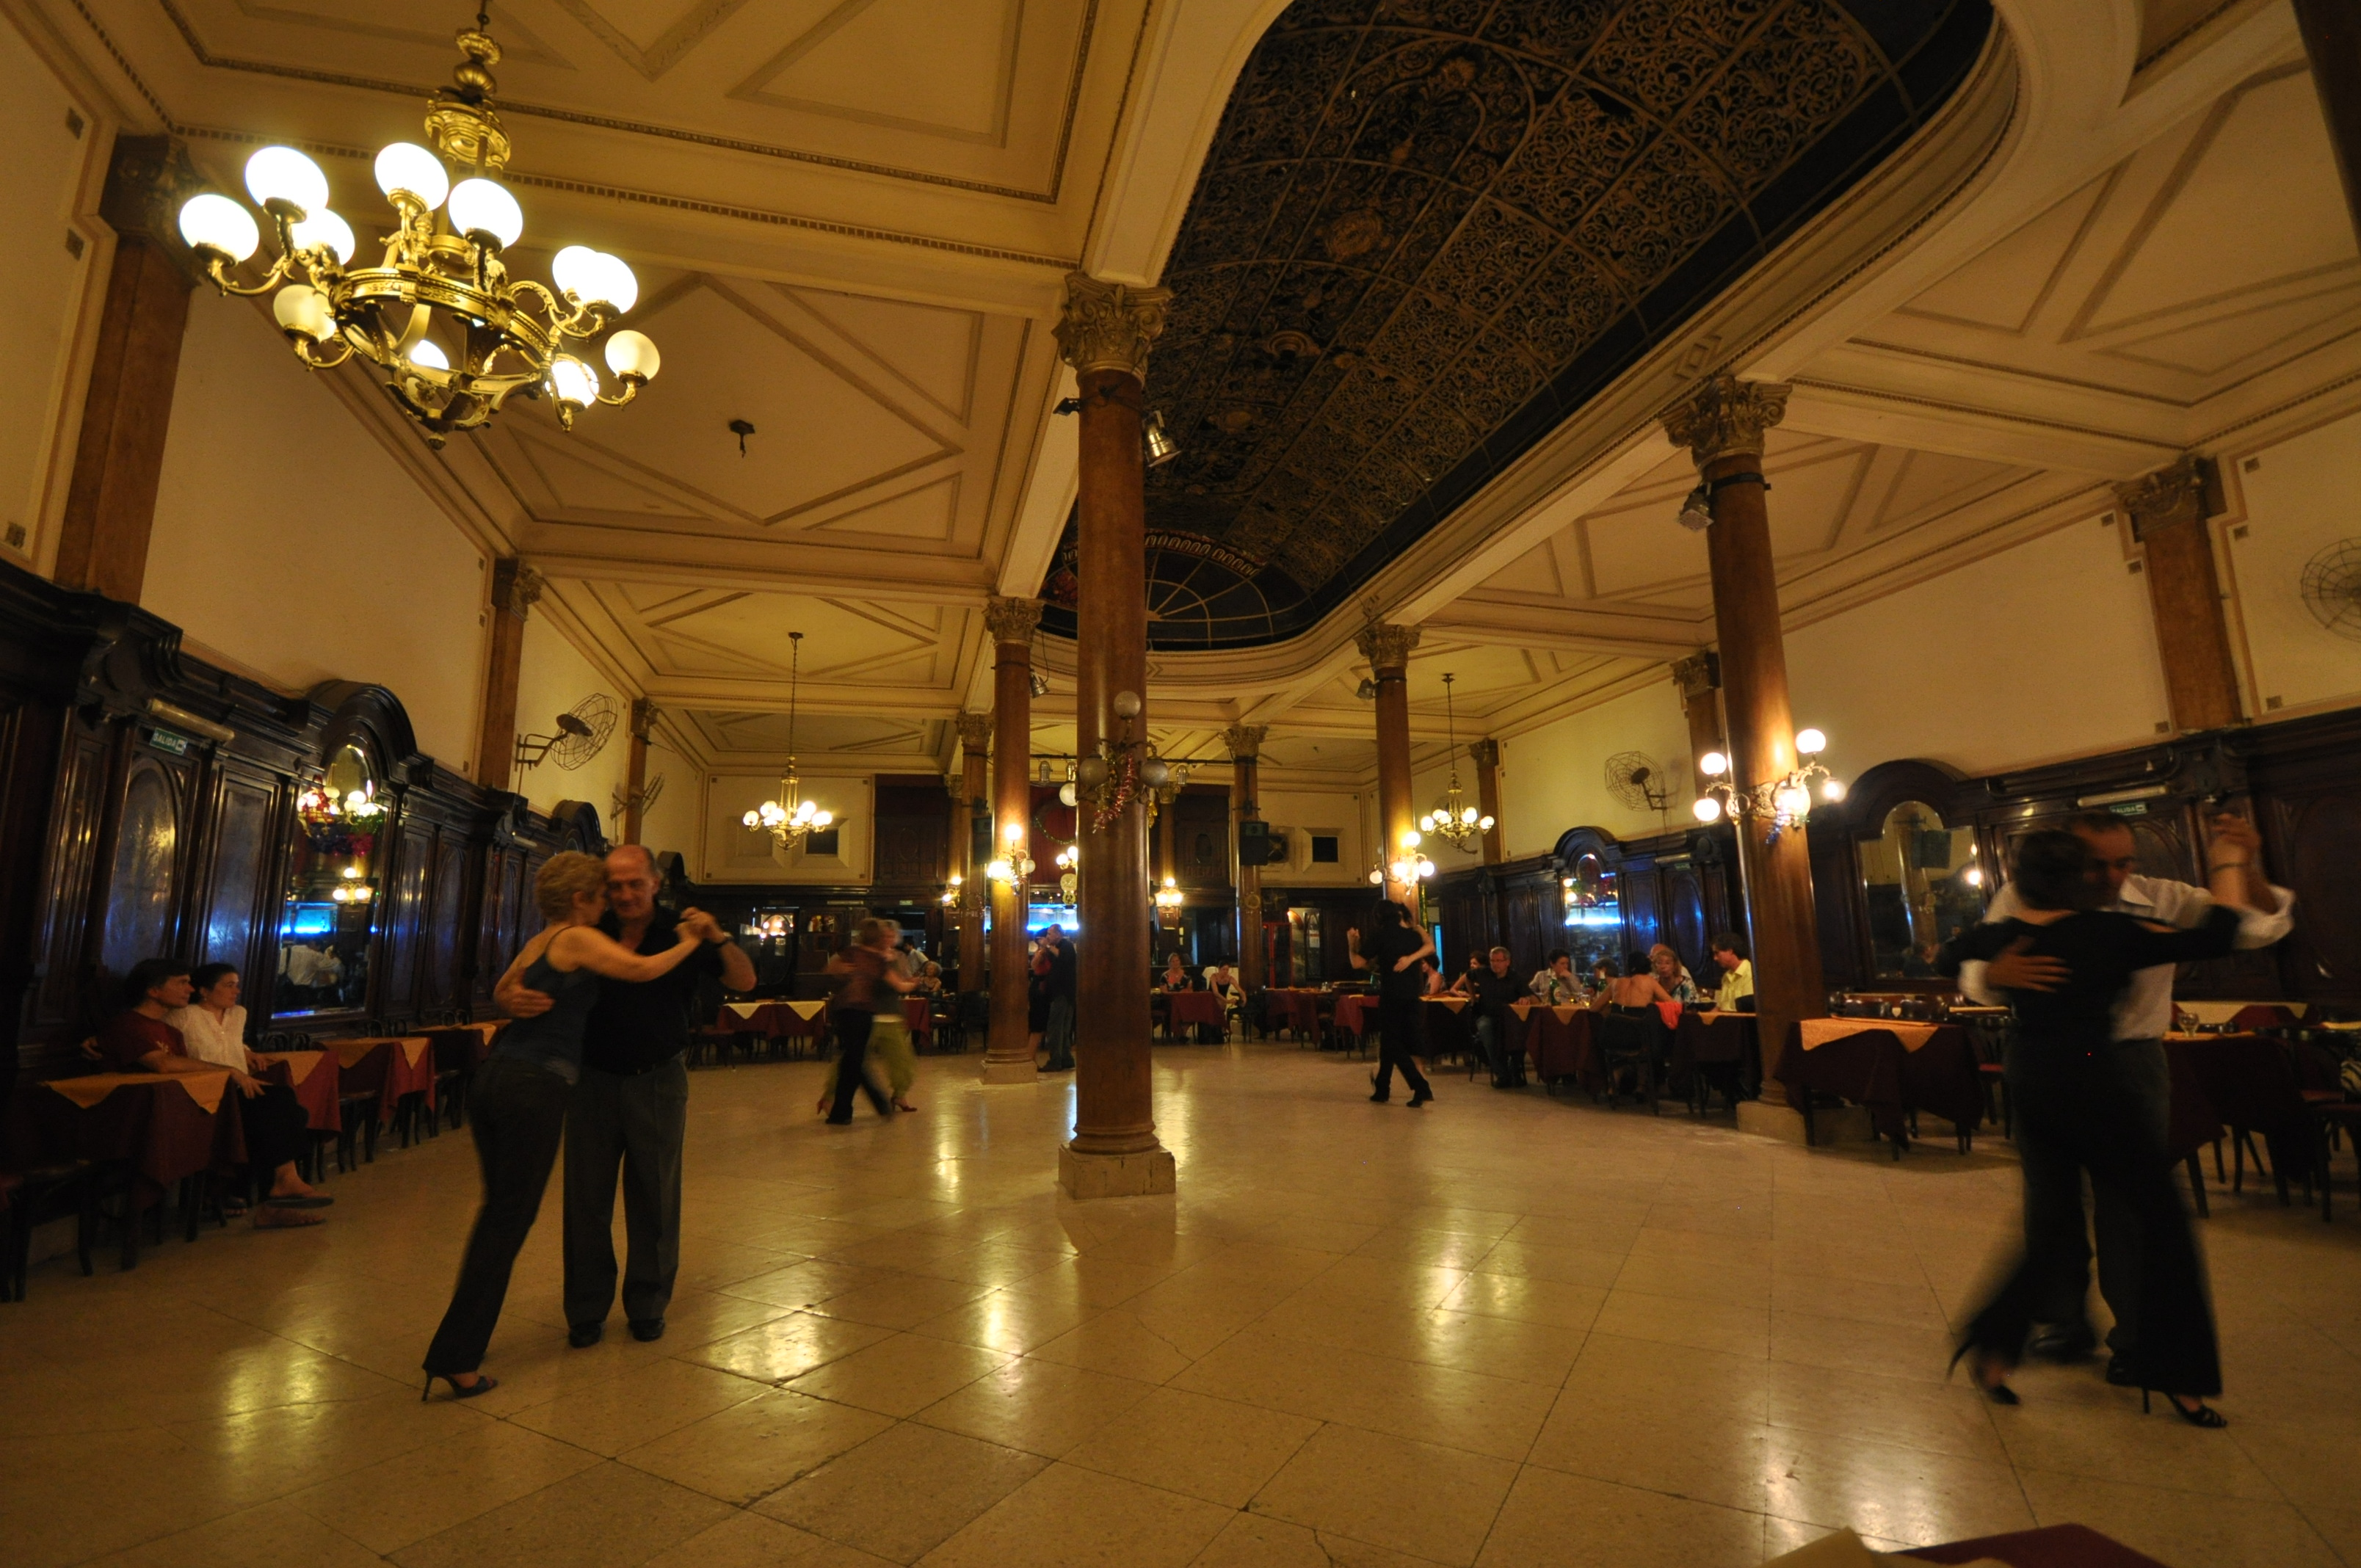 The Best Milongas To Dance Tango In Buenos Aires